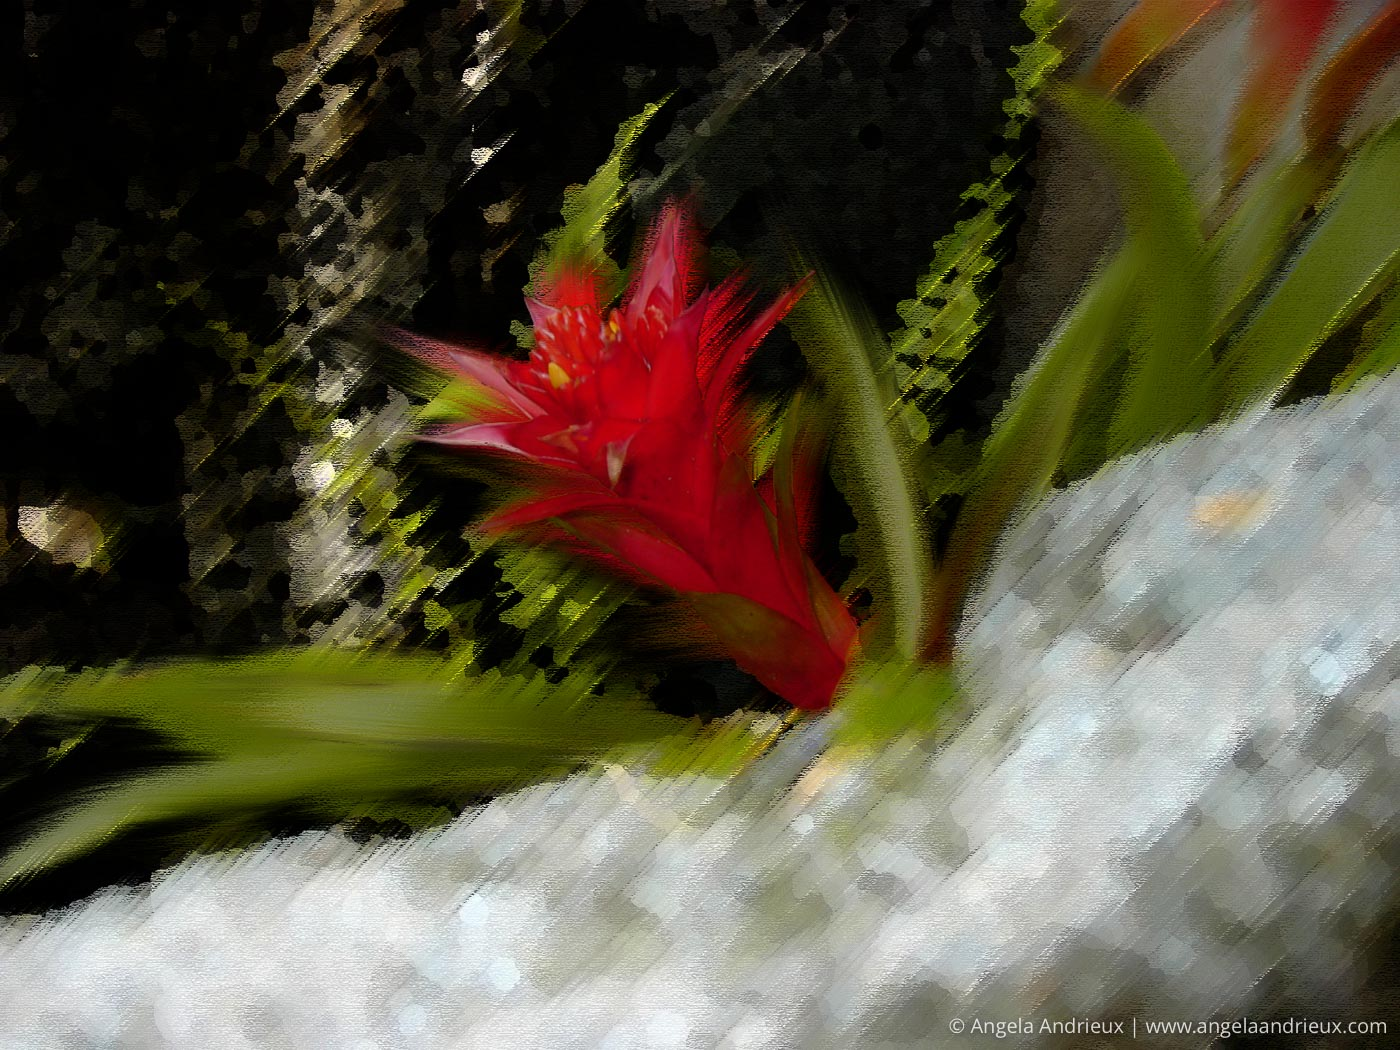 Bromeliad | One of my early attempts at Digital Photo Art